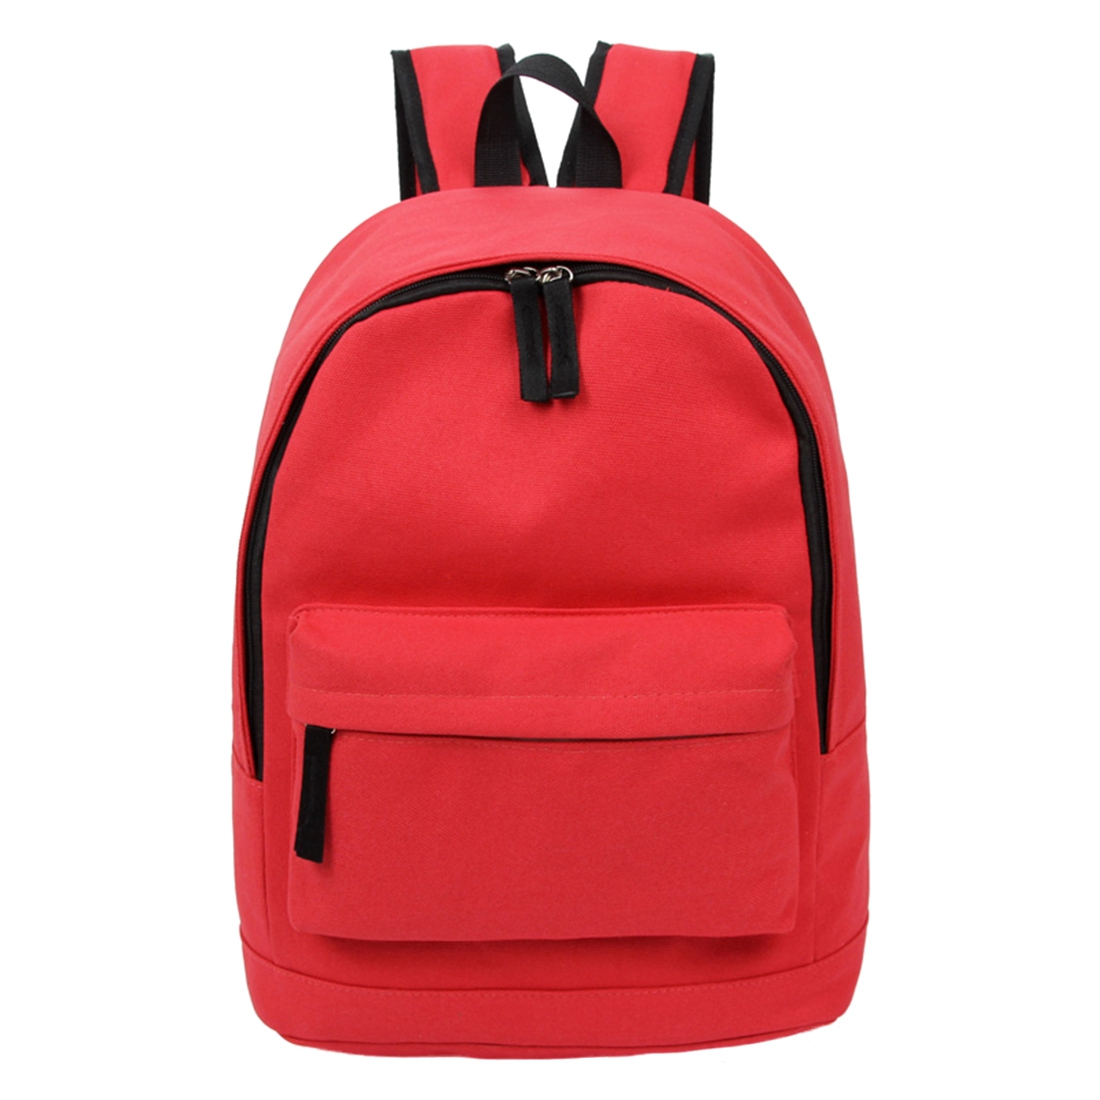 5 pcs of Korea Style Fashion Backpack for Men and Women Preppy Style Soft Back Pack Unisex School Bags Big Capacity Canvas Bag